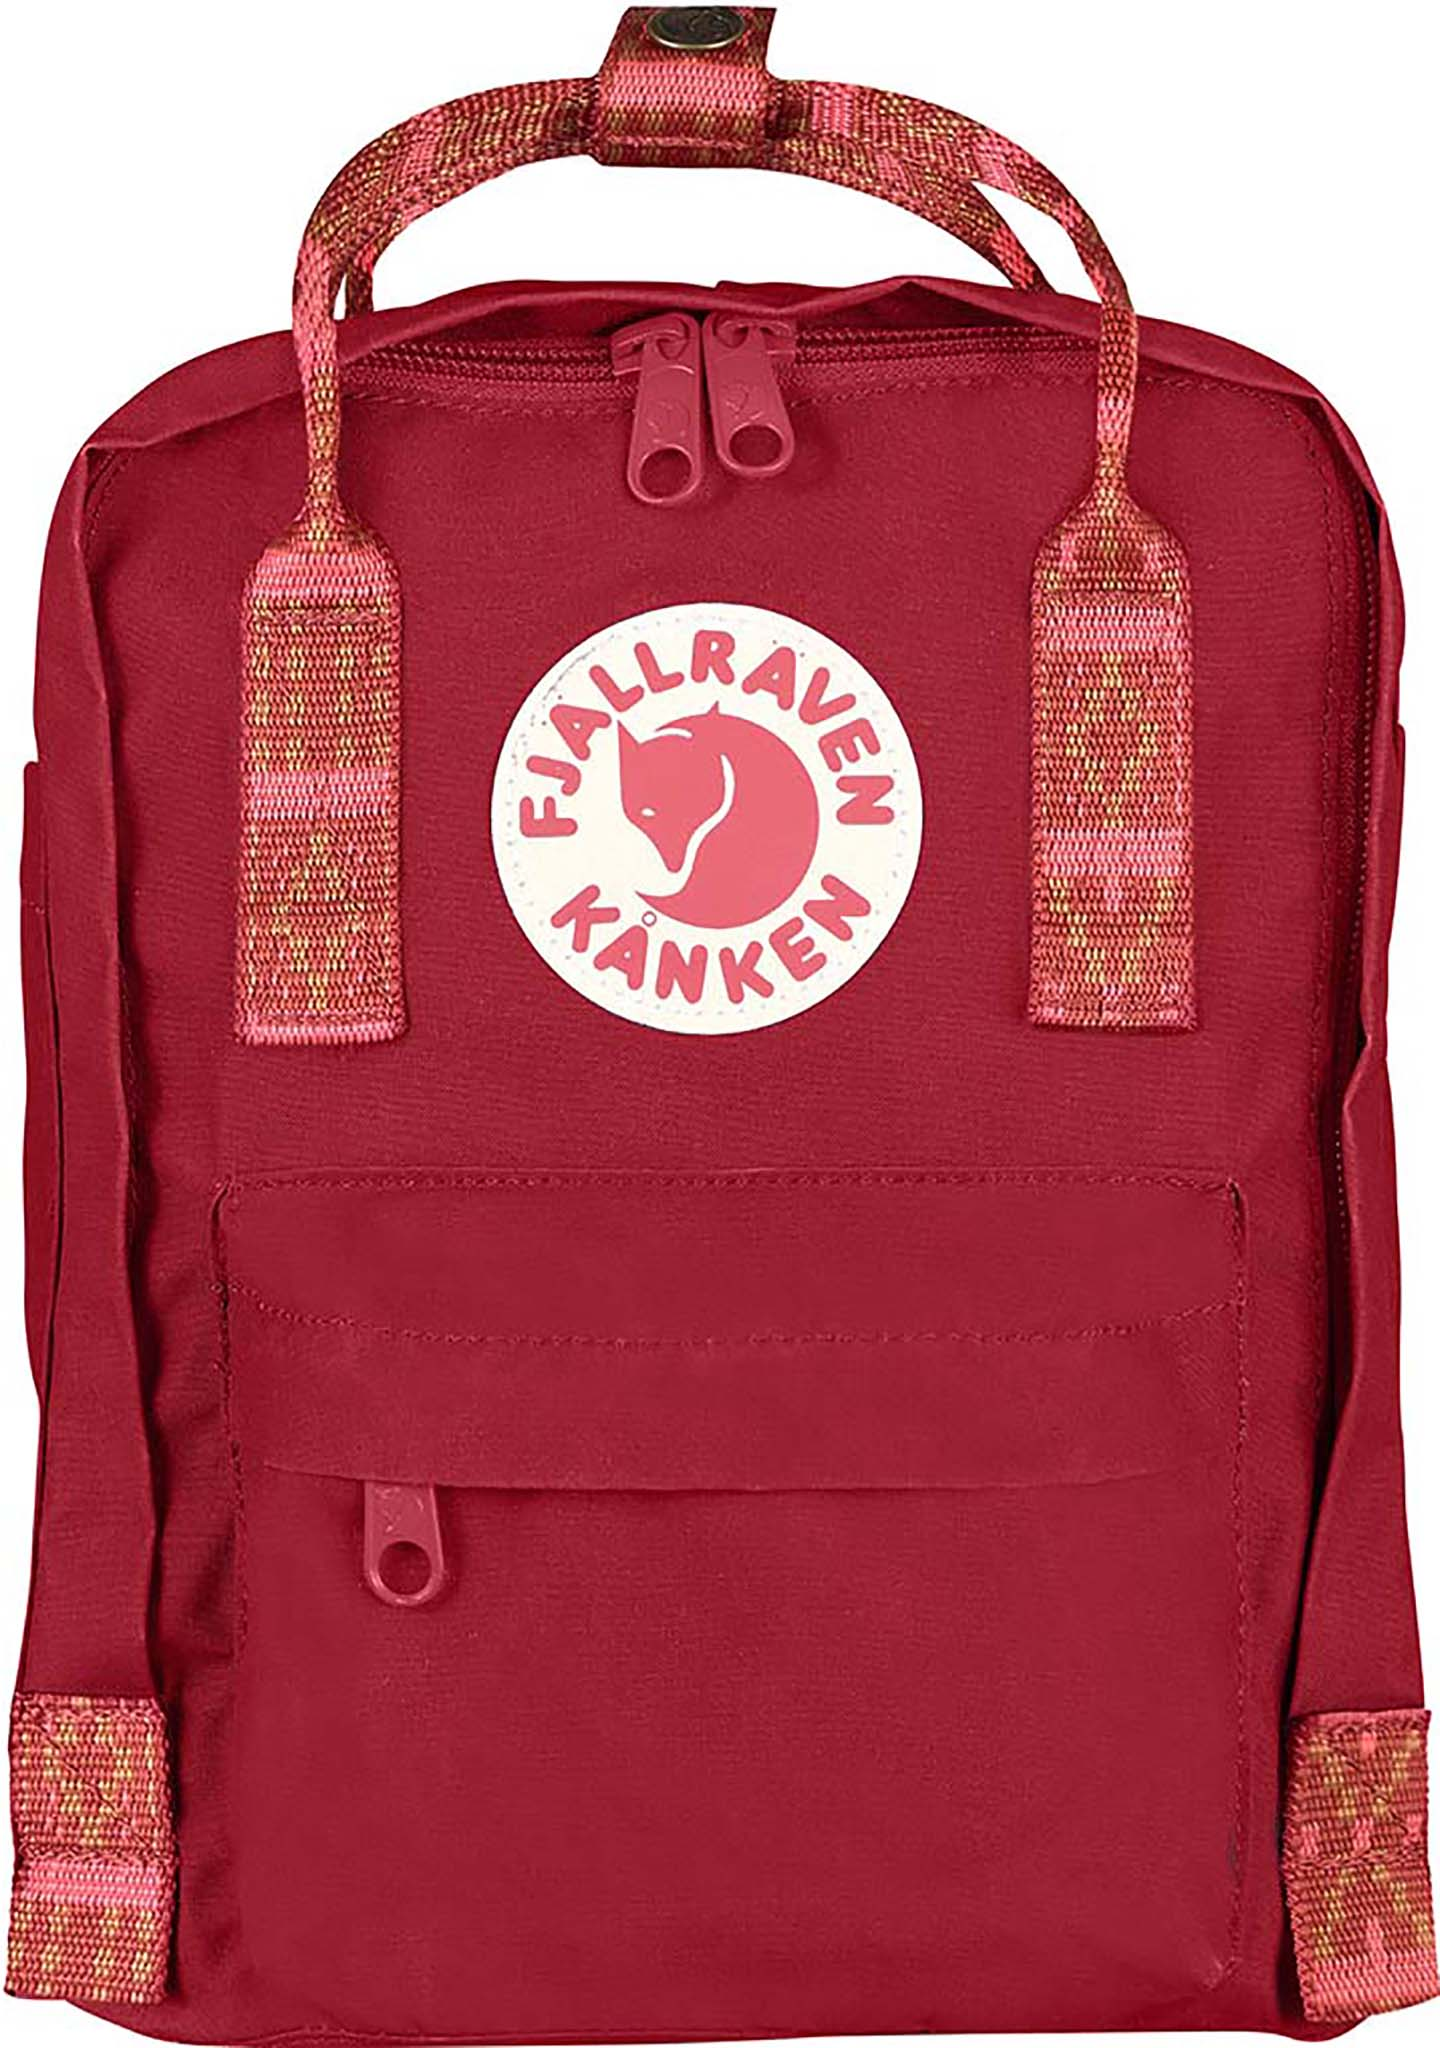 Fjallraven Kanken Mini Backpack in Deep Red/Folk Pattern